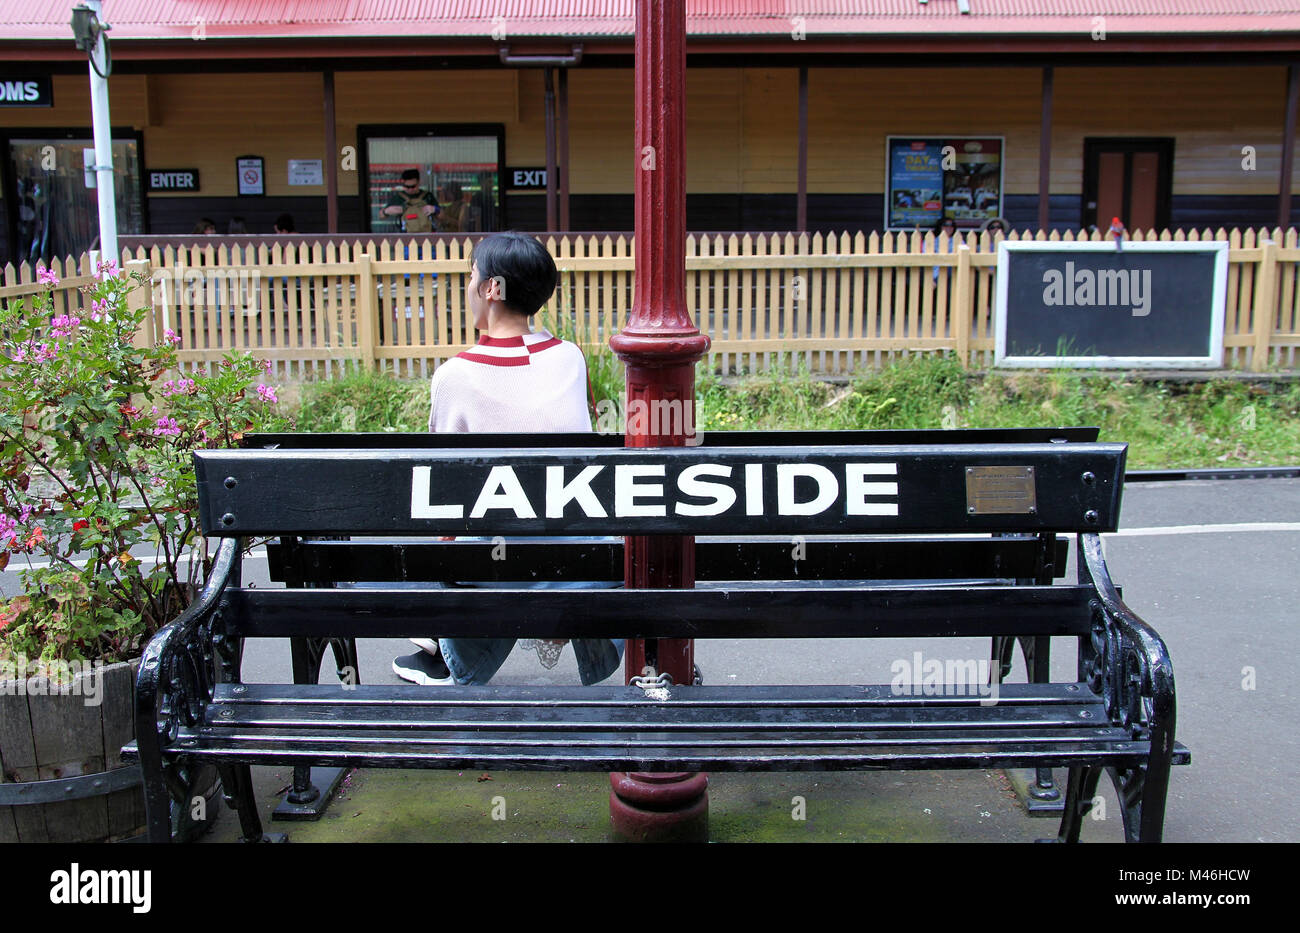 Lakeside on the Puffing Billy Steam Train route - Stock Image